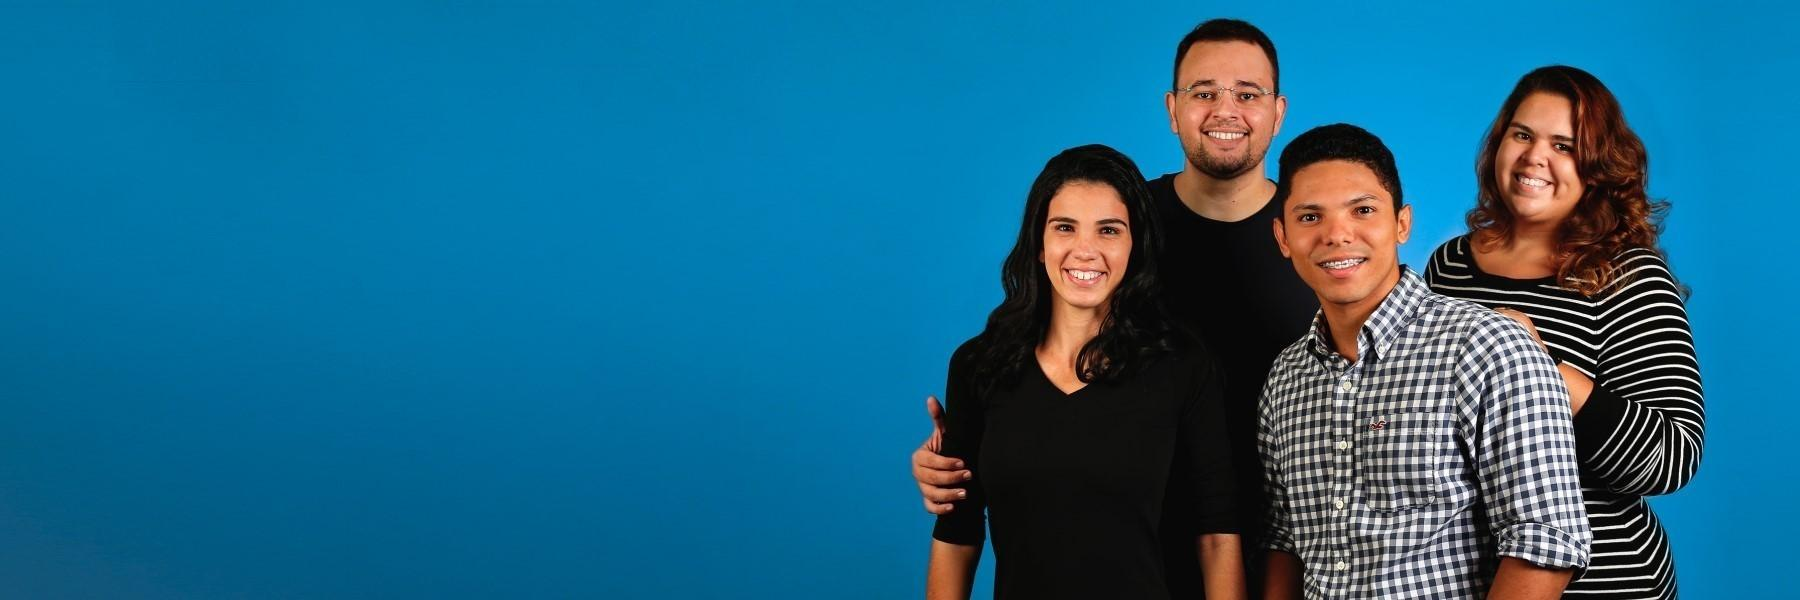 Mother, father, daughter, and son smiling with blue background | Dentist 95032